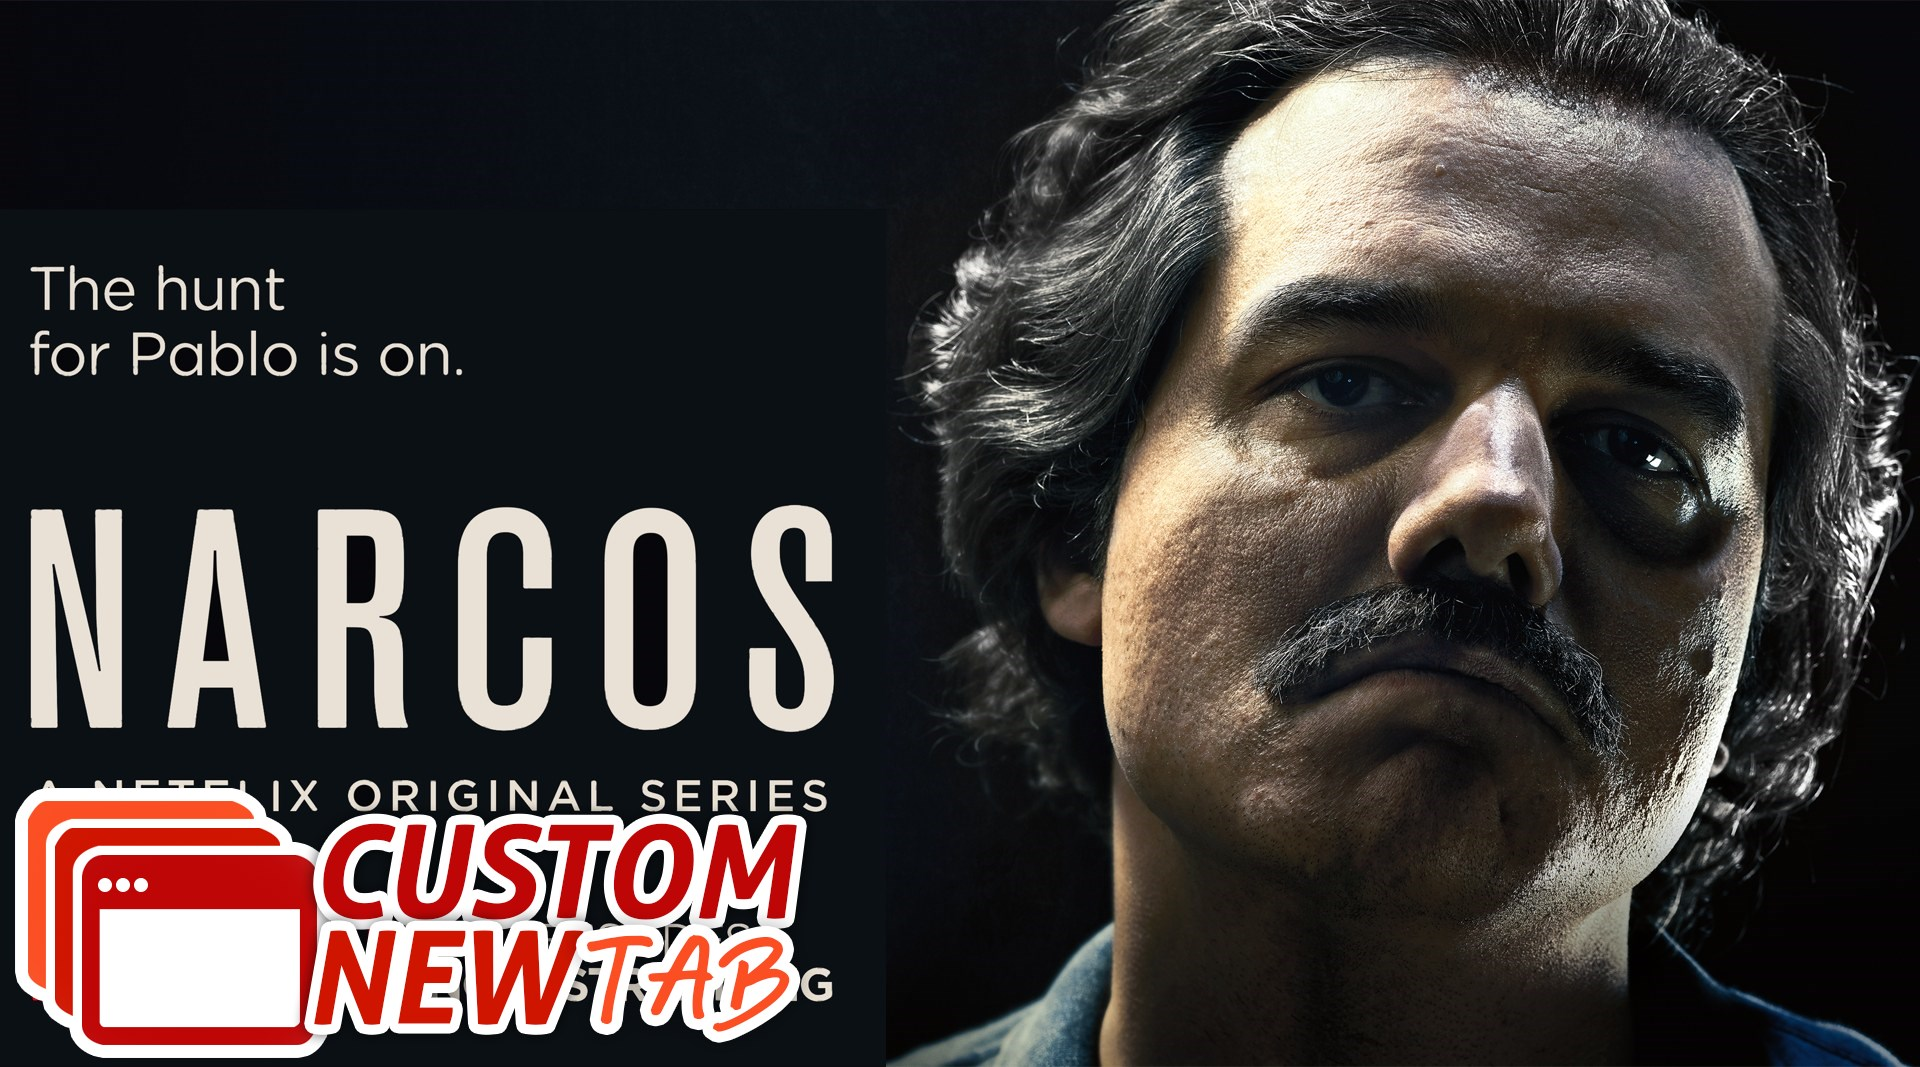 Narcos Wallpapers posted by Sarah Johnson